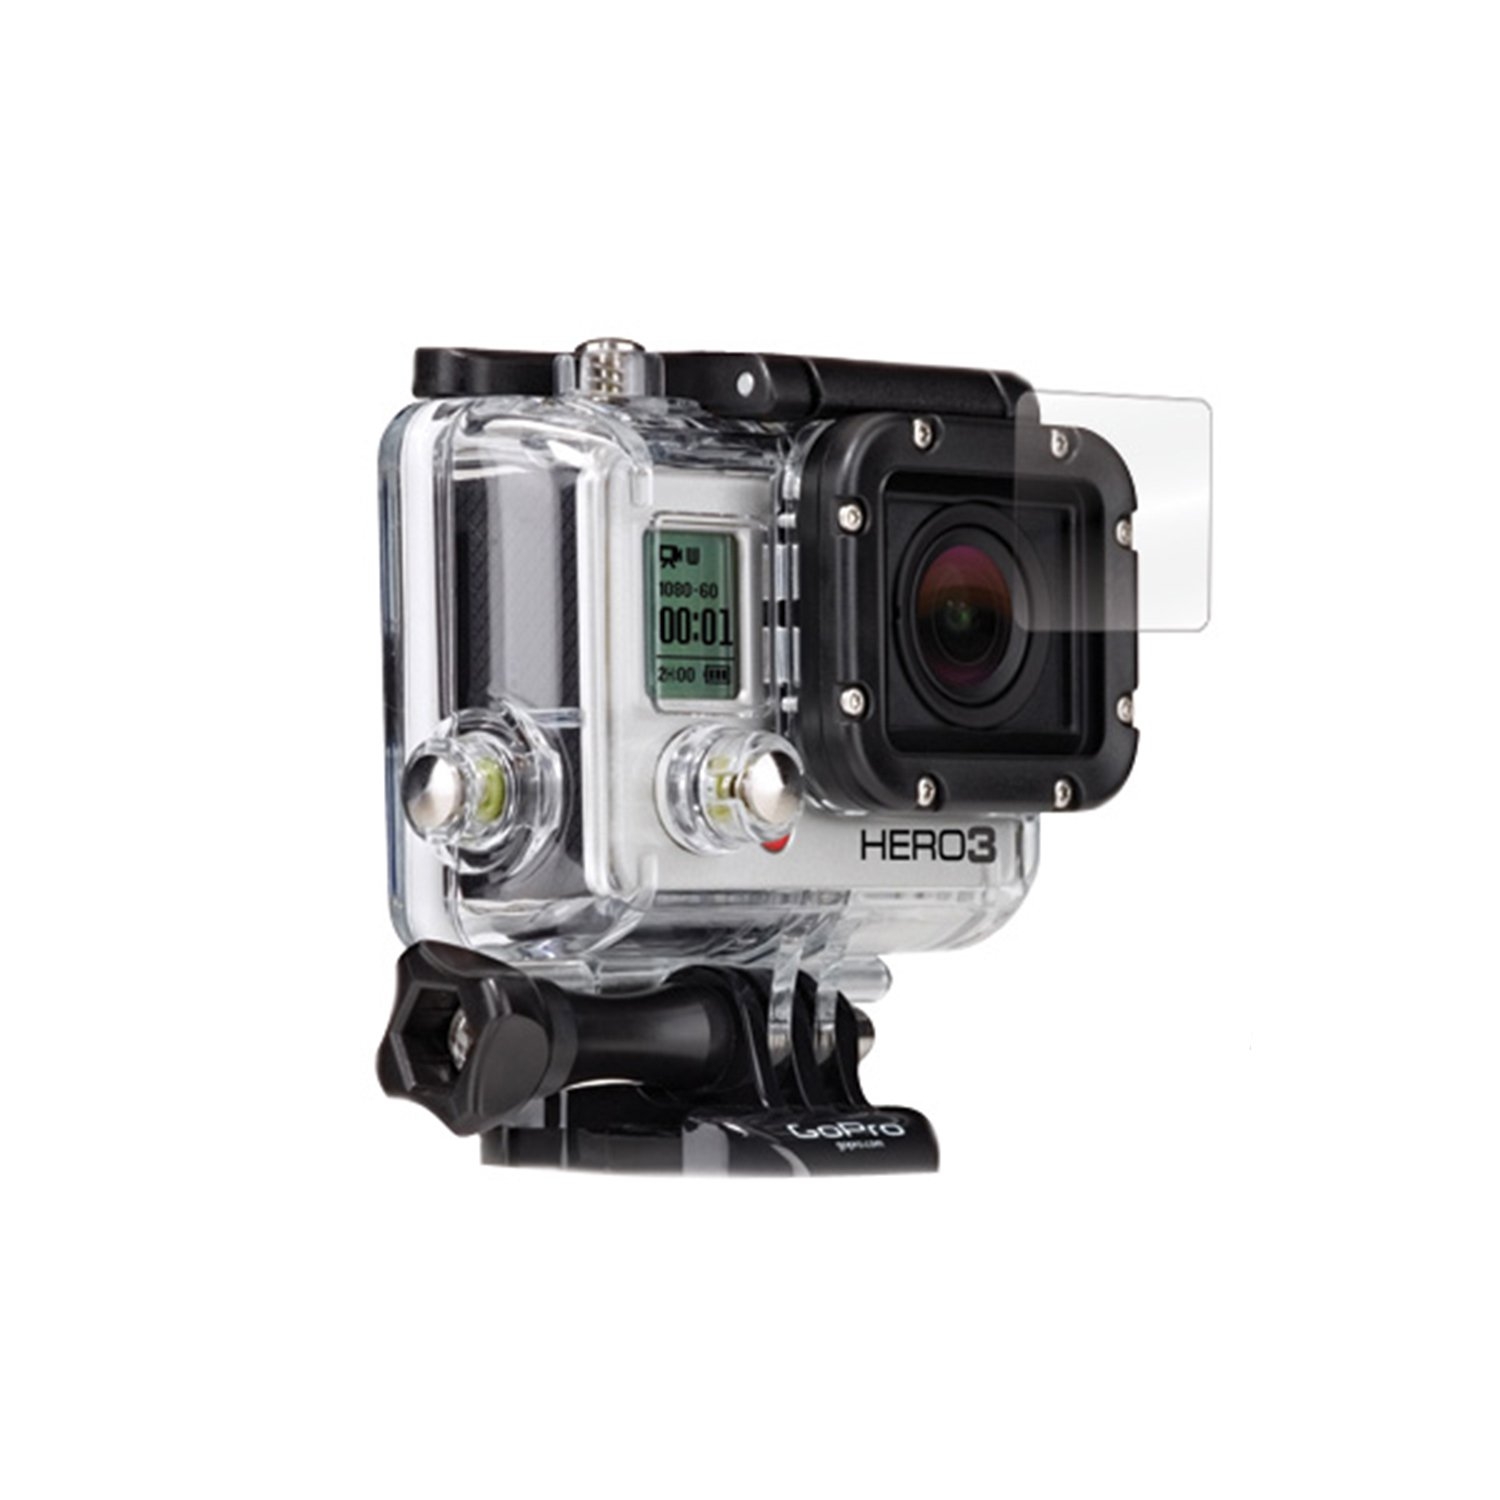 BodyGuardz BZ-UGP3-0513F UltraTough Optically Clear Screen Protector with Anti-Microbial for GoPro Hero3 Housing Lens, Gel/Dry Apply (Clear) by BodyGuardz